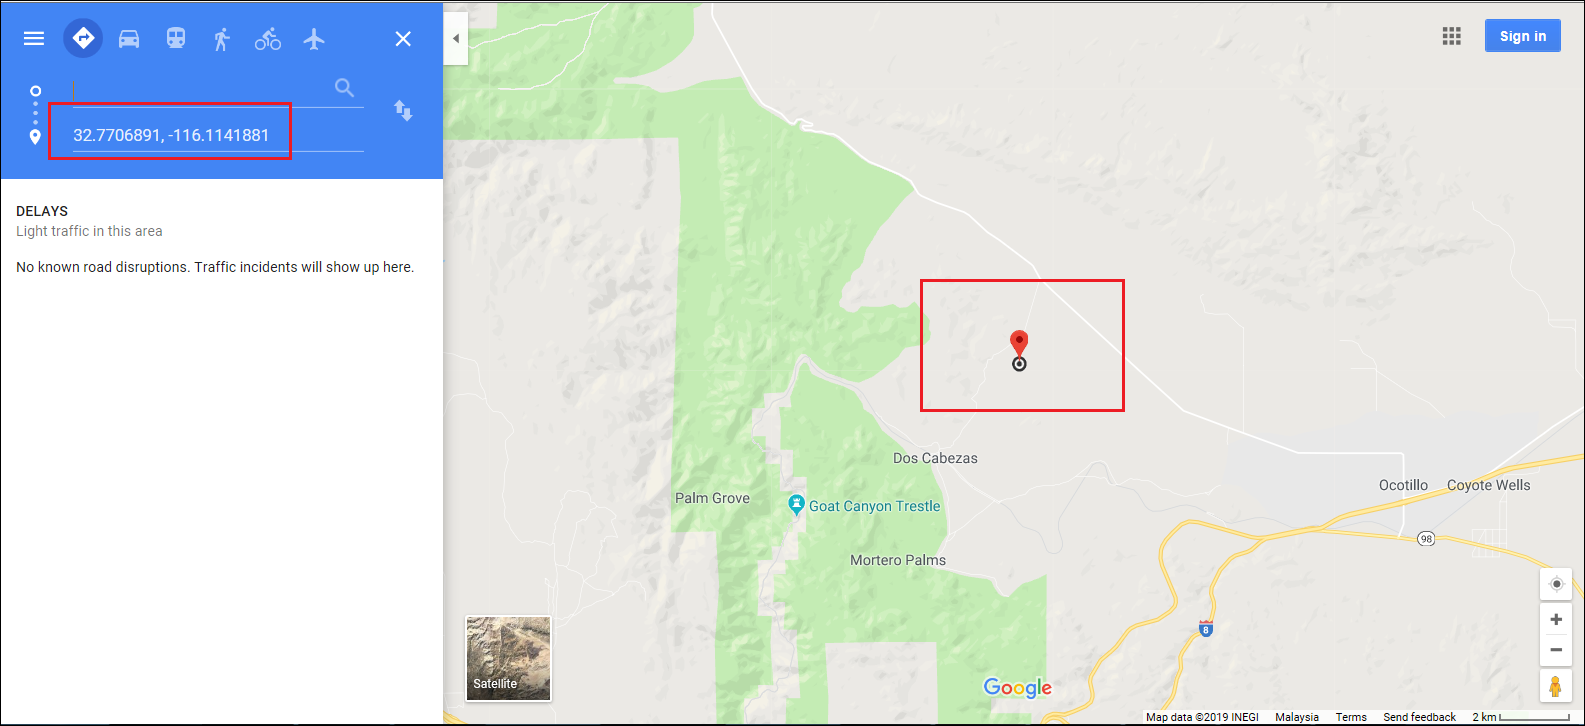 Google Maps is opened in a web browser